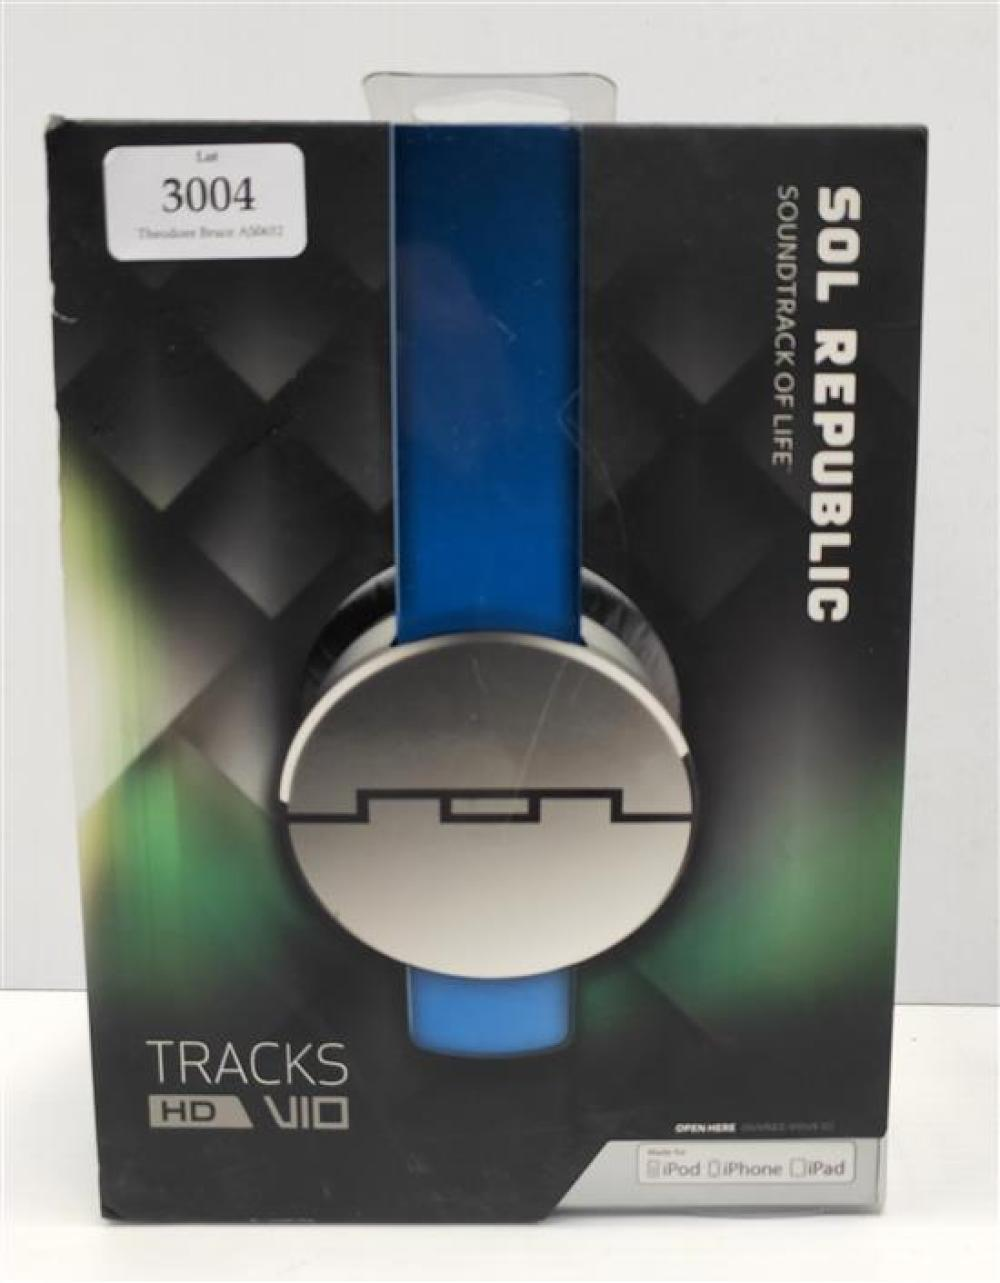 A pair of headphones marked SOL Republic Tracks HD VIO in sealed box